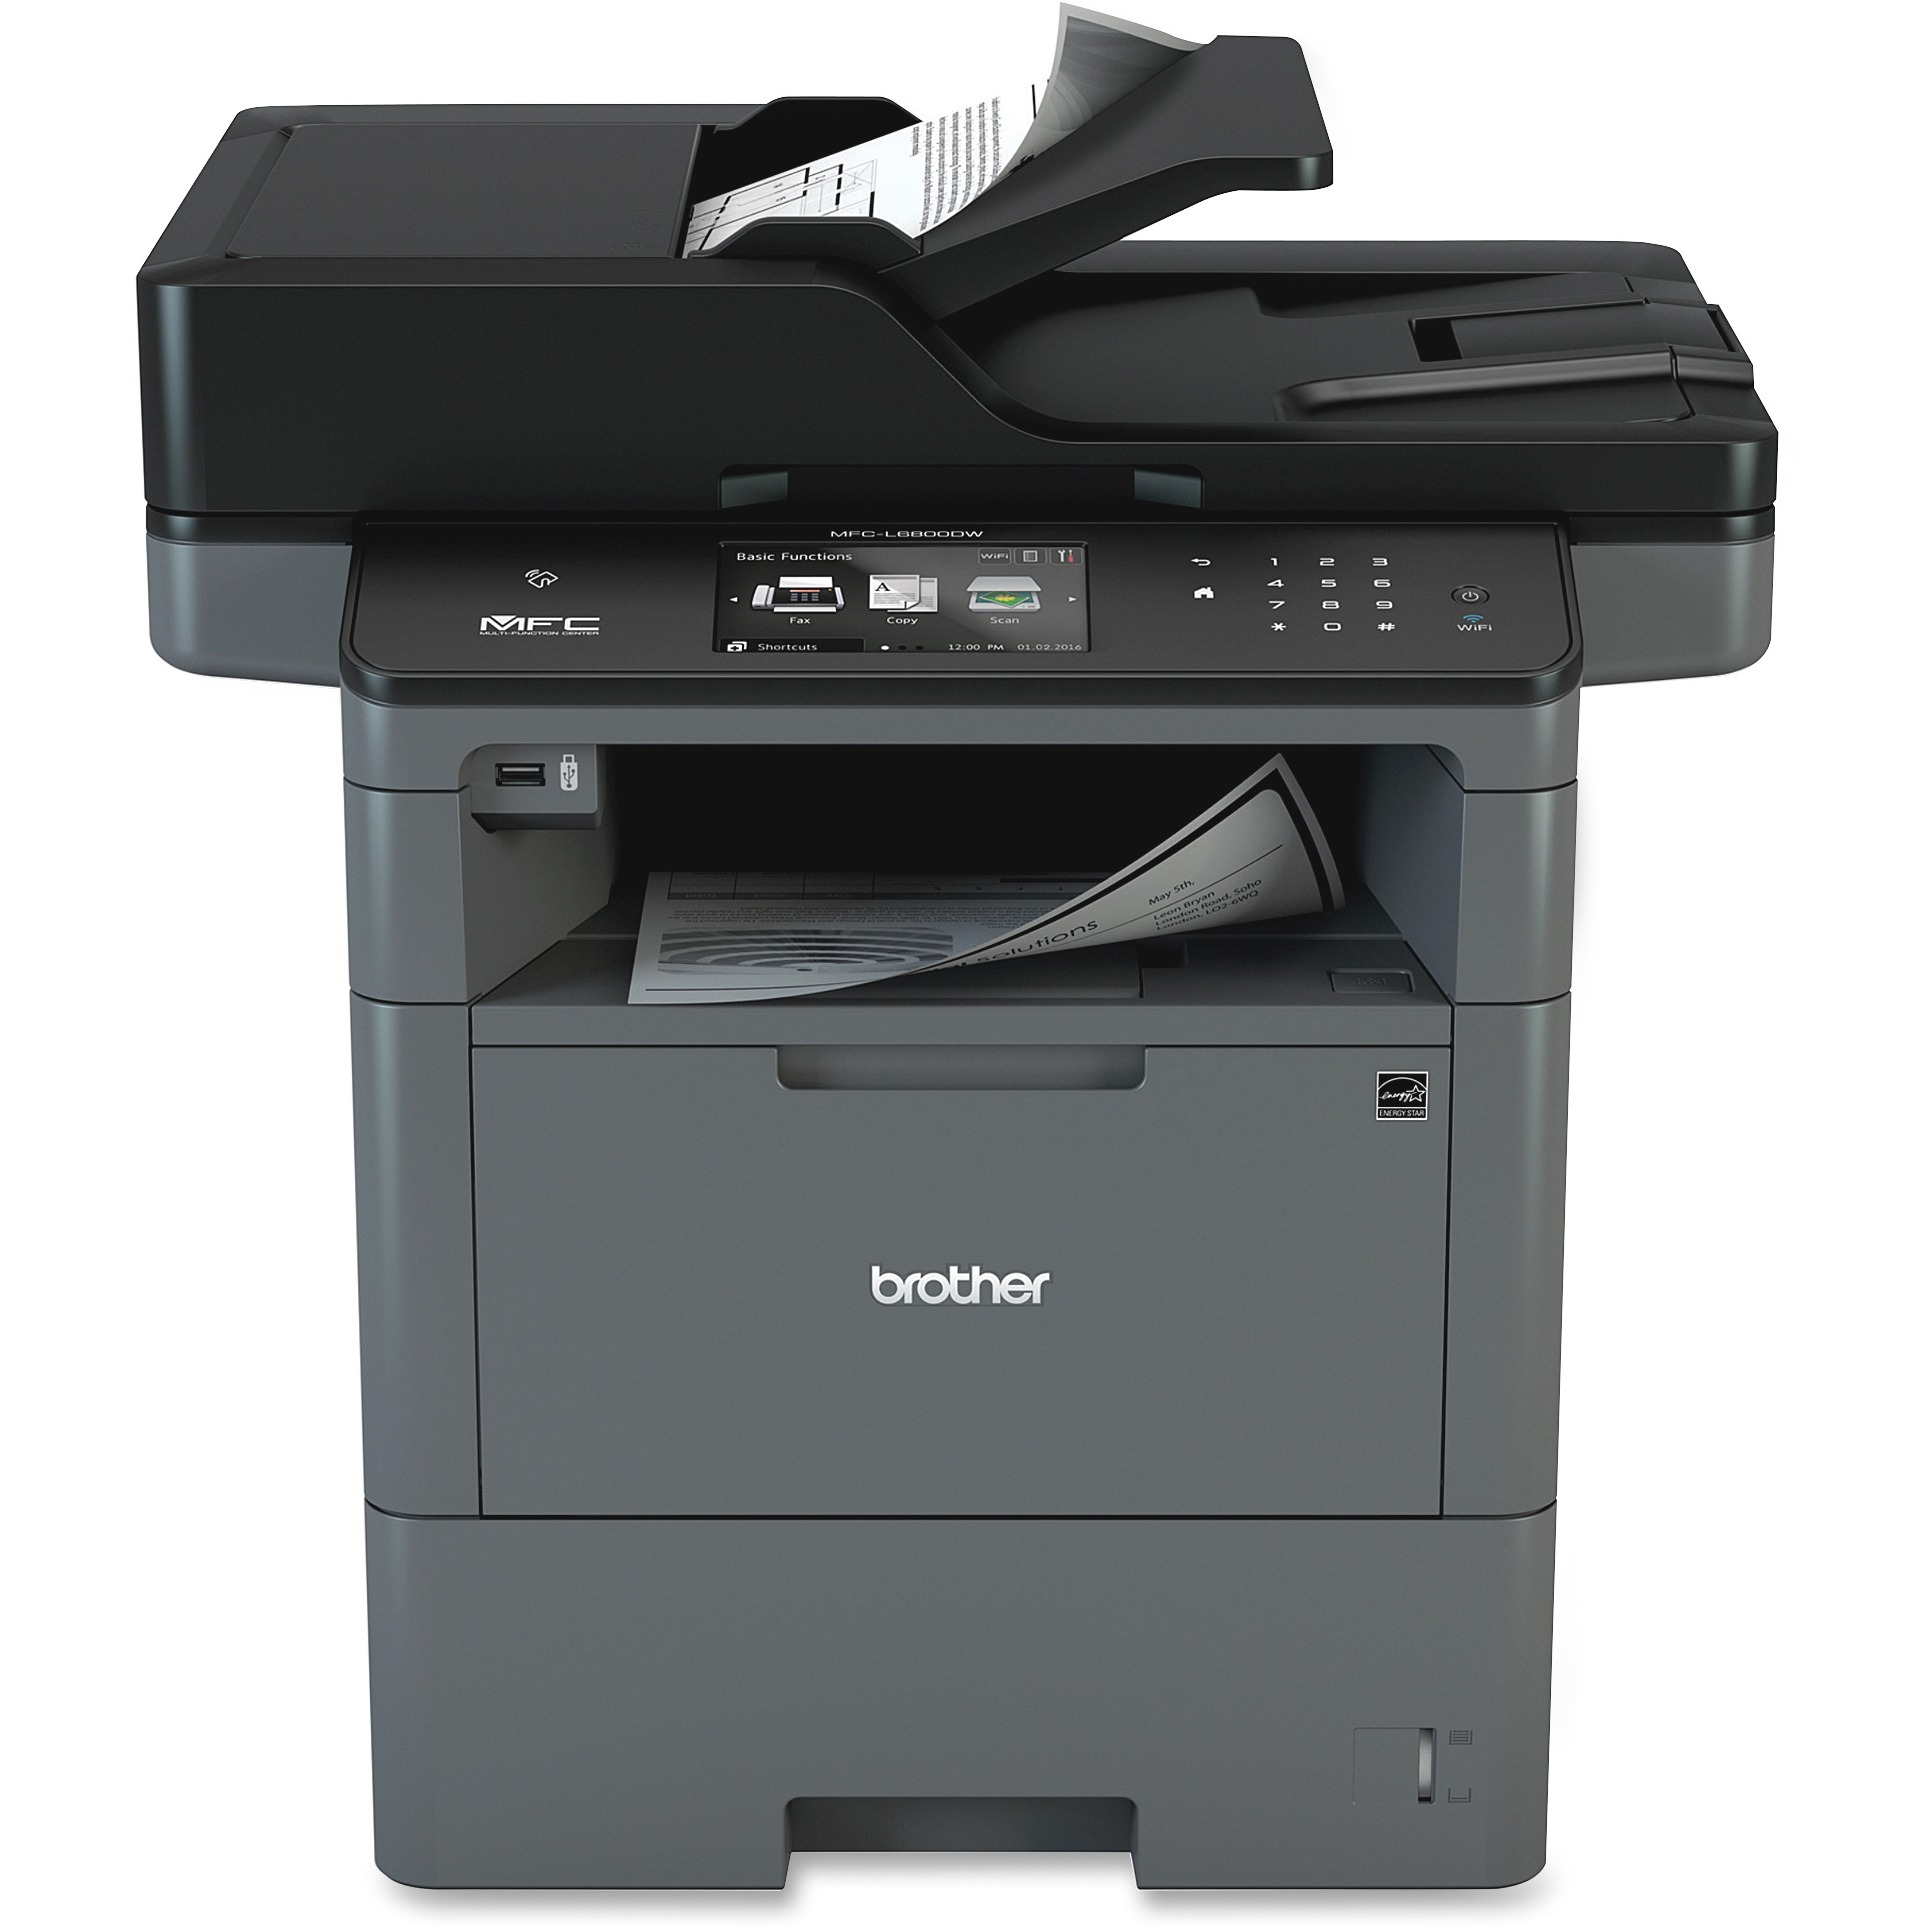 Brother MFC-L6800DW Wireless Monochrome All-in-One Laser Printer, Copy Fax Print Scan by Brother